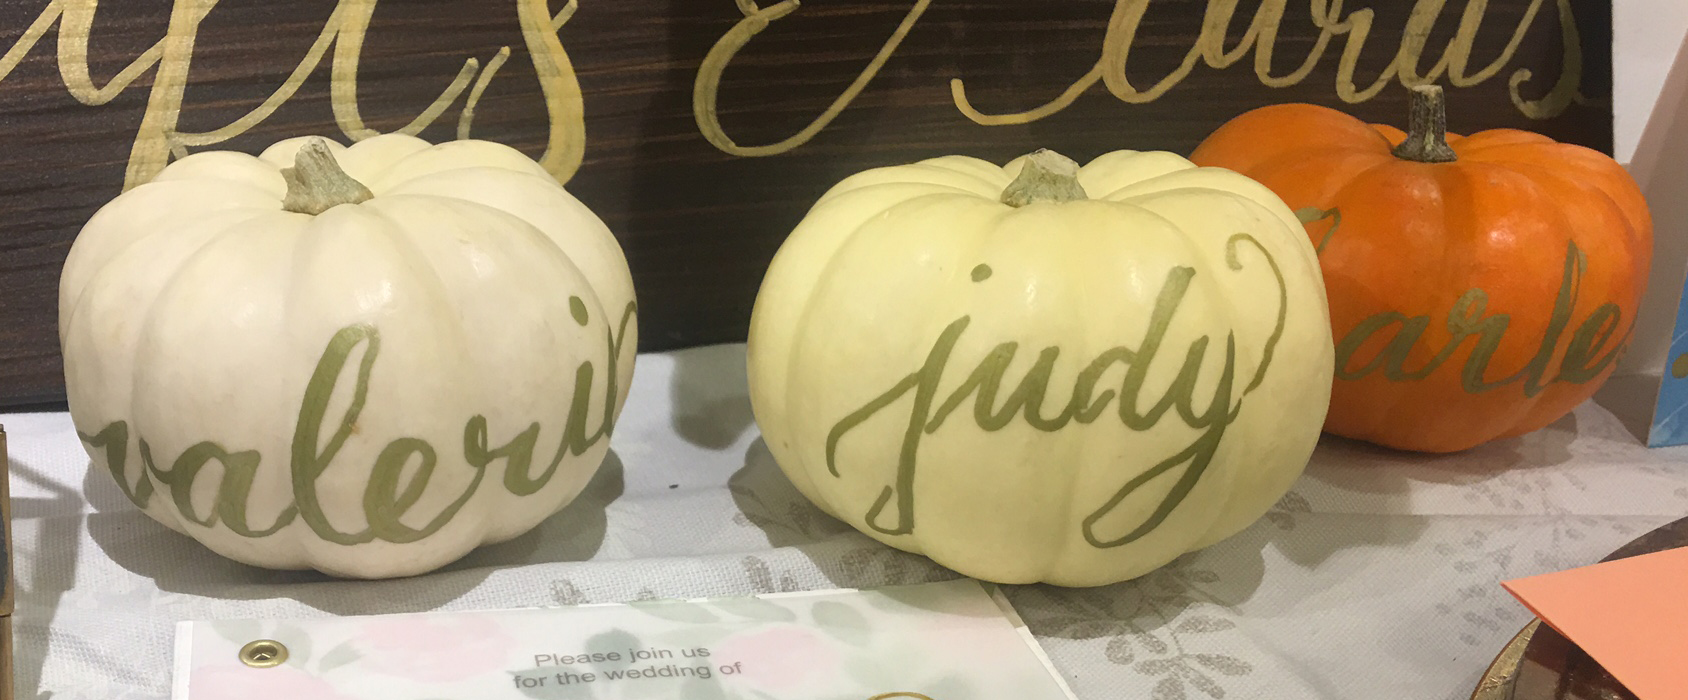 Thanksgiving Placecard Pumpkins Decorated With Modern Calligraphy